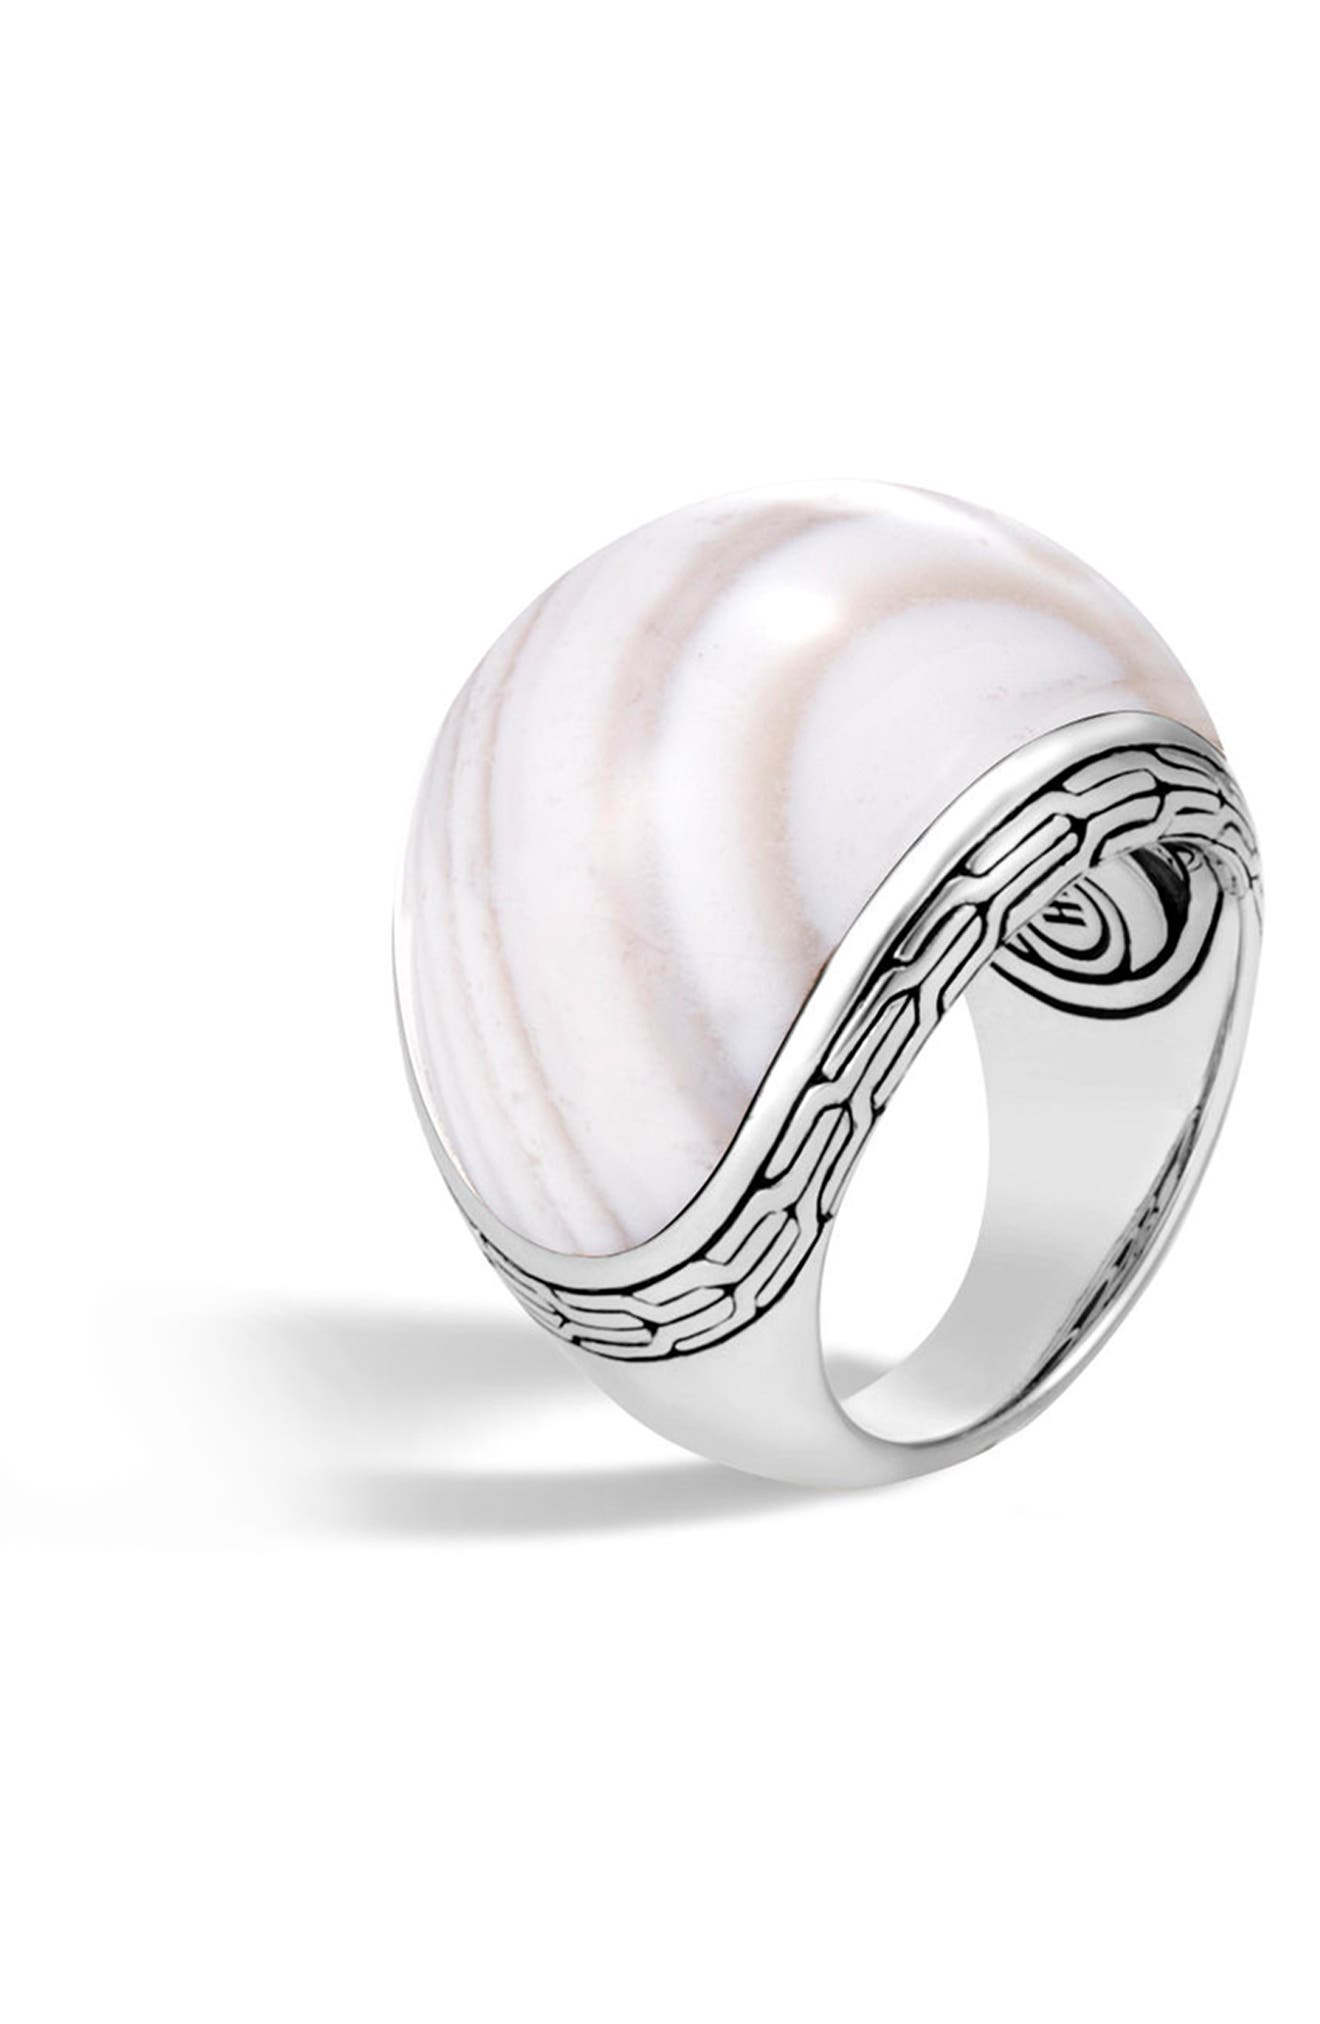 Classic Silver Chain Dome Ring,                             Alternate thumbnail 2, color,                             Silver/ White Agate